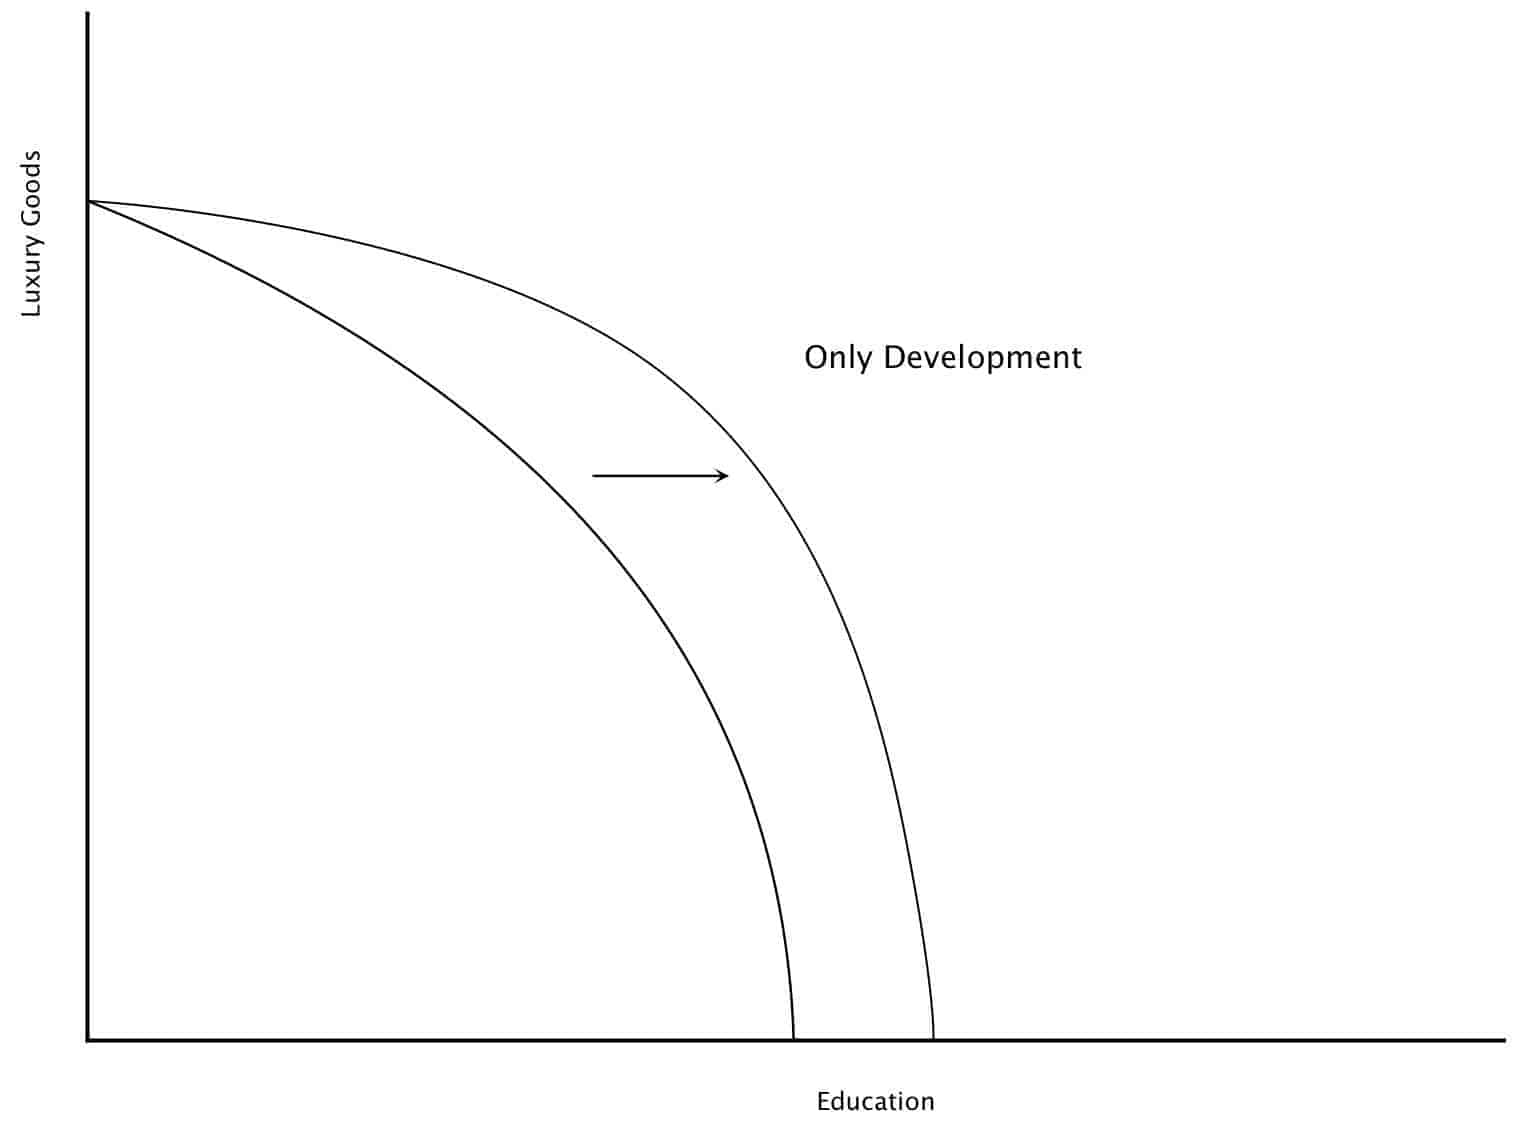 difference between economic growth and economic development Community development versus economic development  the table below gives a summary overview of the difference between community development and economic development.